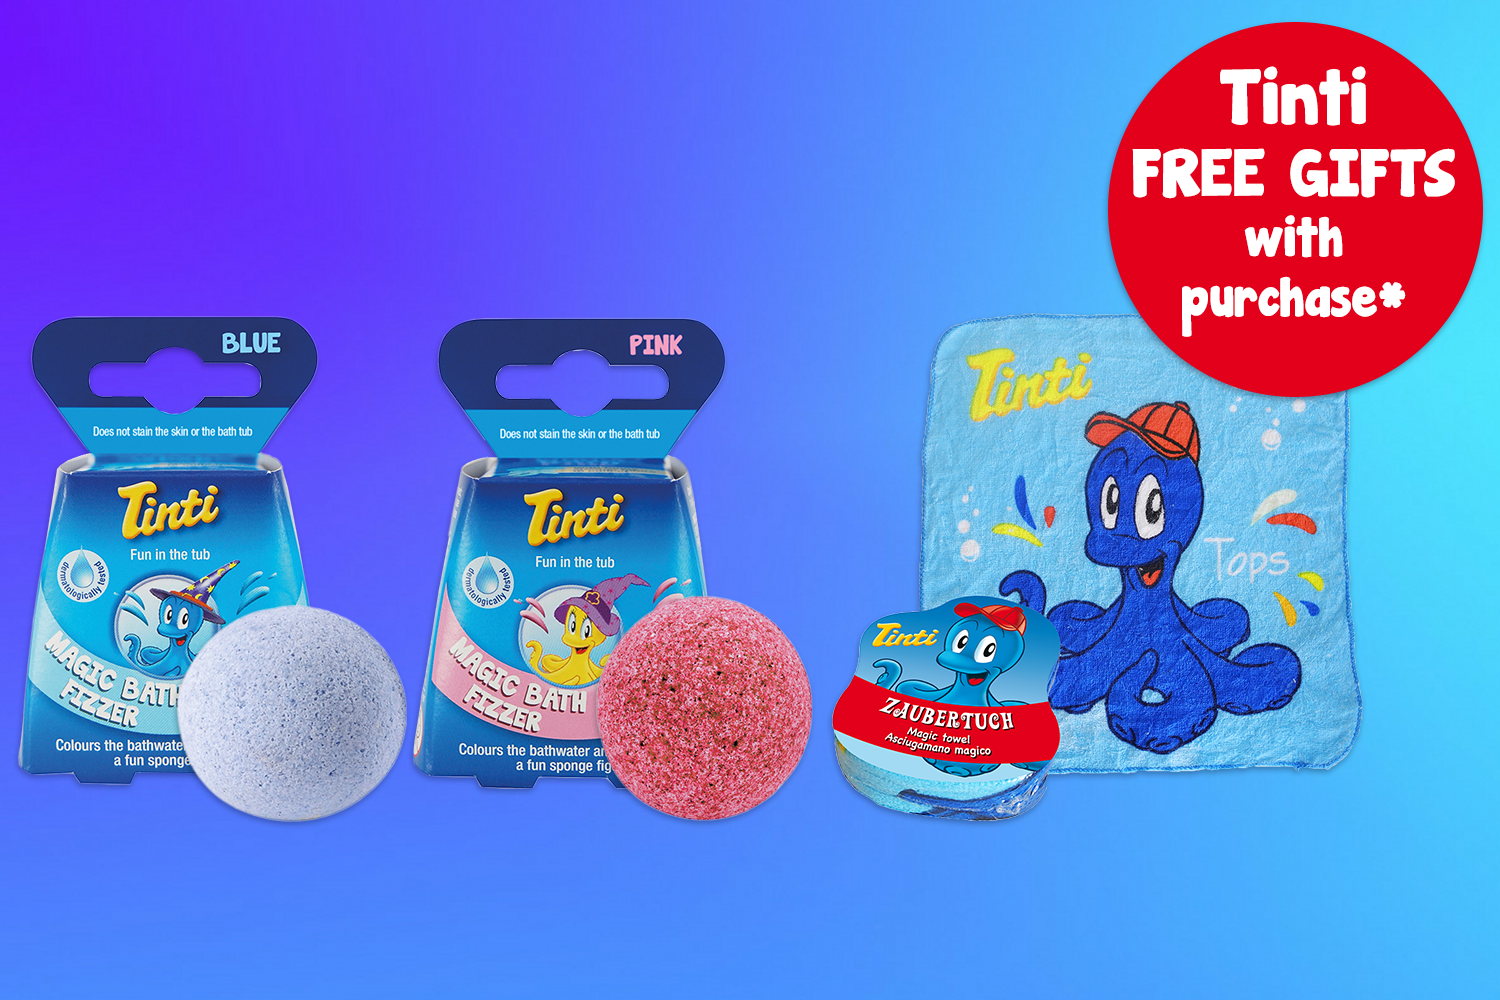 Tinti FREE GIFTS* - *When you purchase $20 or more on any Tinti products receive your choice of 1 Pink or 1 Blue FREE MAGIC BATH FIZZER PLUS 1 FREE MAGIC FACE TOWEL 30x30cm. Type BLUEBATH or PINKBATH in the Additional Information box during checkout.Offer valid until 31st October 2019 and while stock lasts.